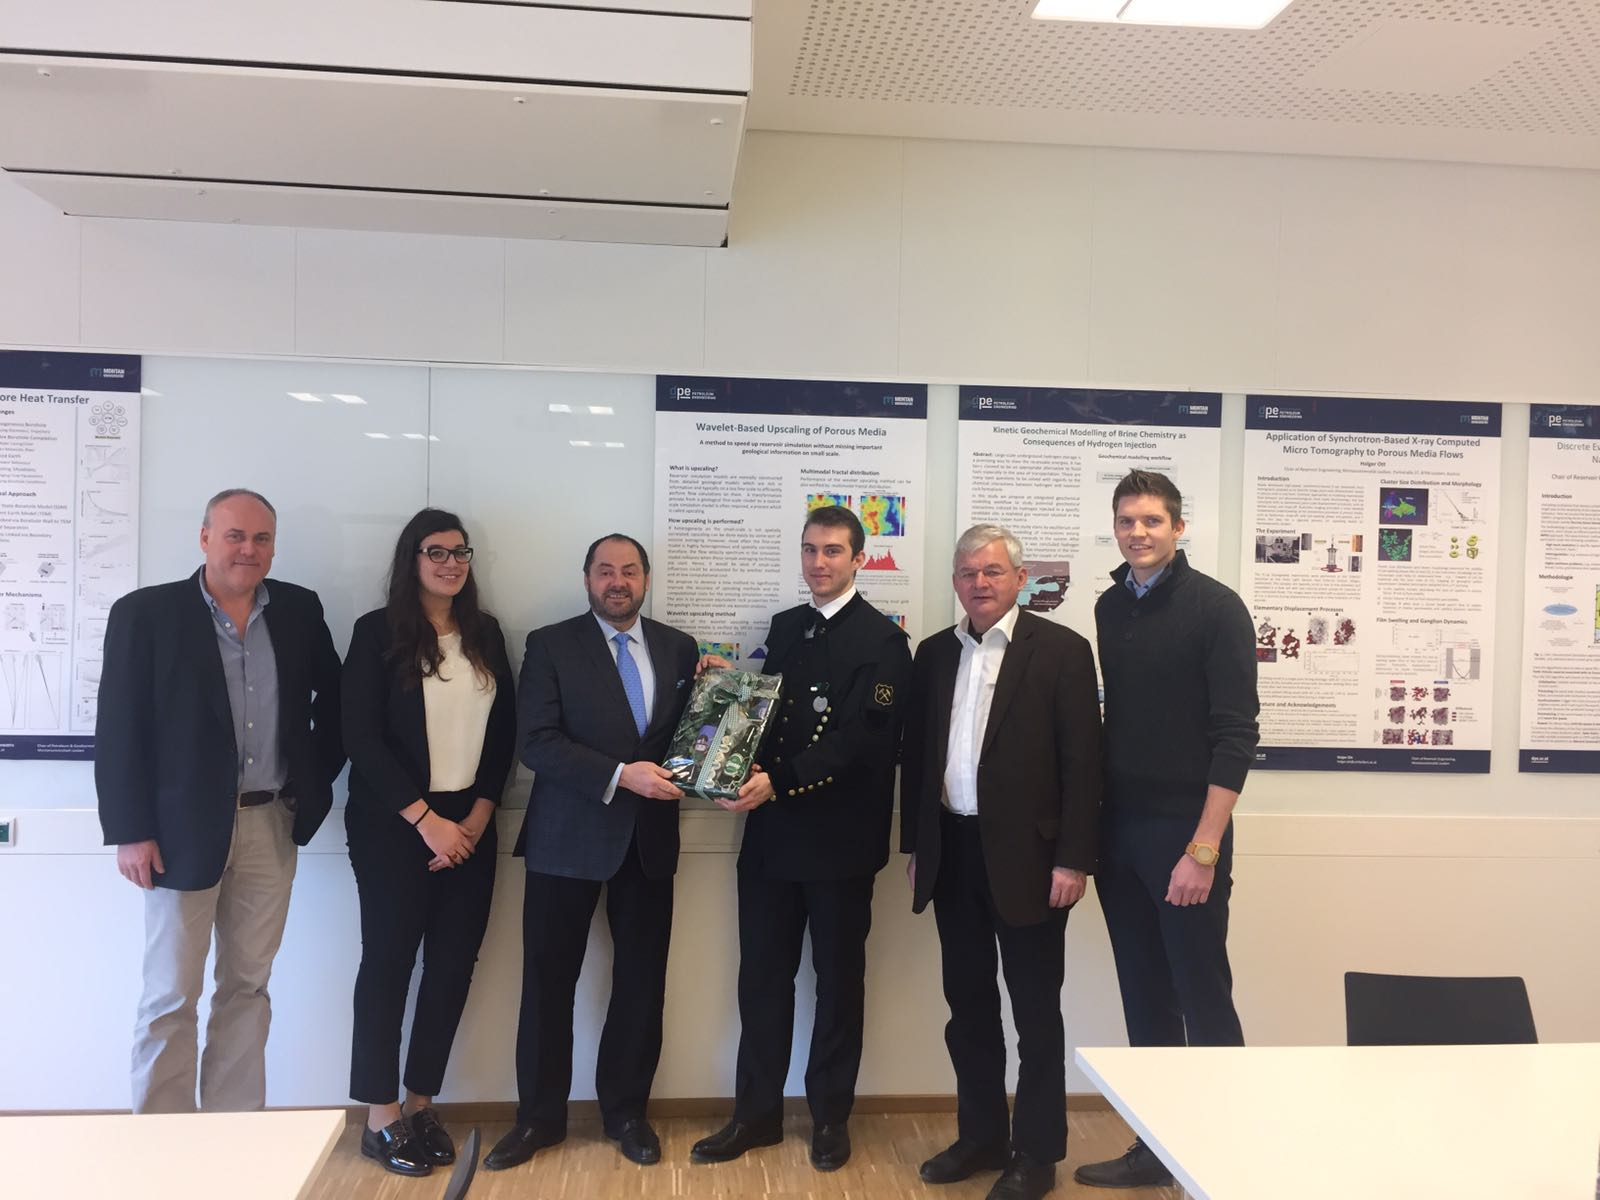 Department tour: Sepp Steinlechner, Ines Smaoui, Darcy Spady, Florian Gamperl, Prof. Herbert Hofstätter, Georg Ripperger (from left to right) in the Production Engineering Master Class